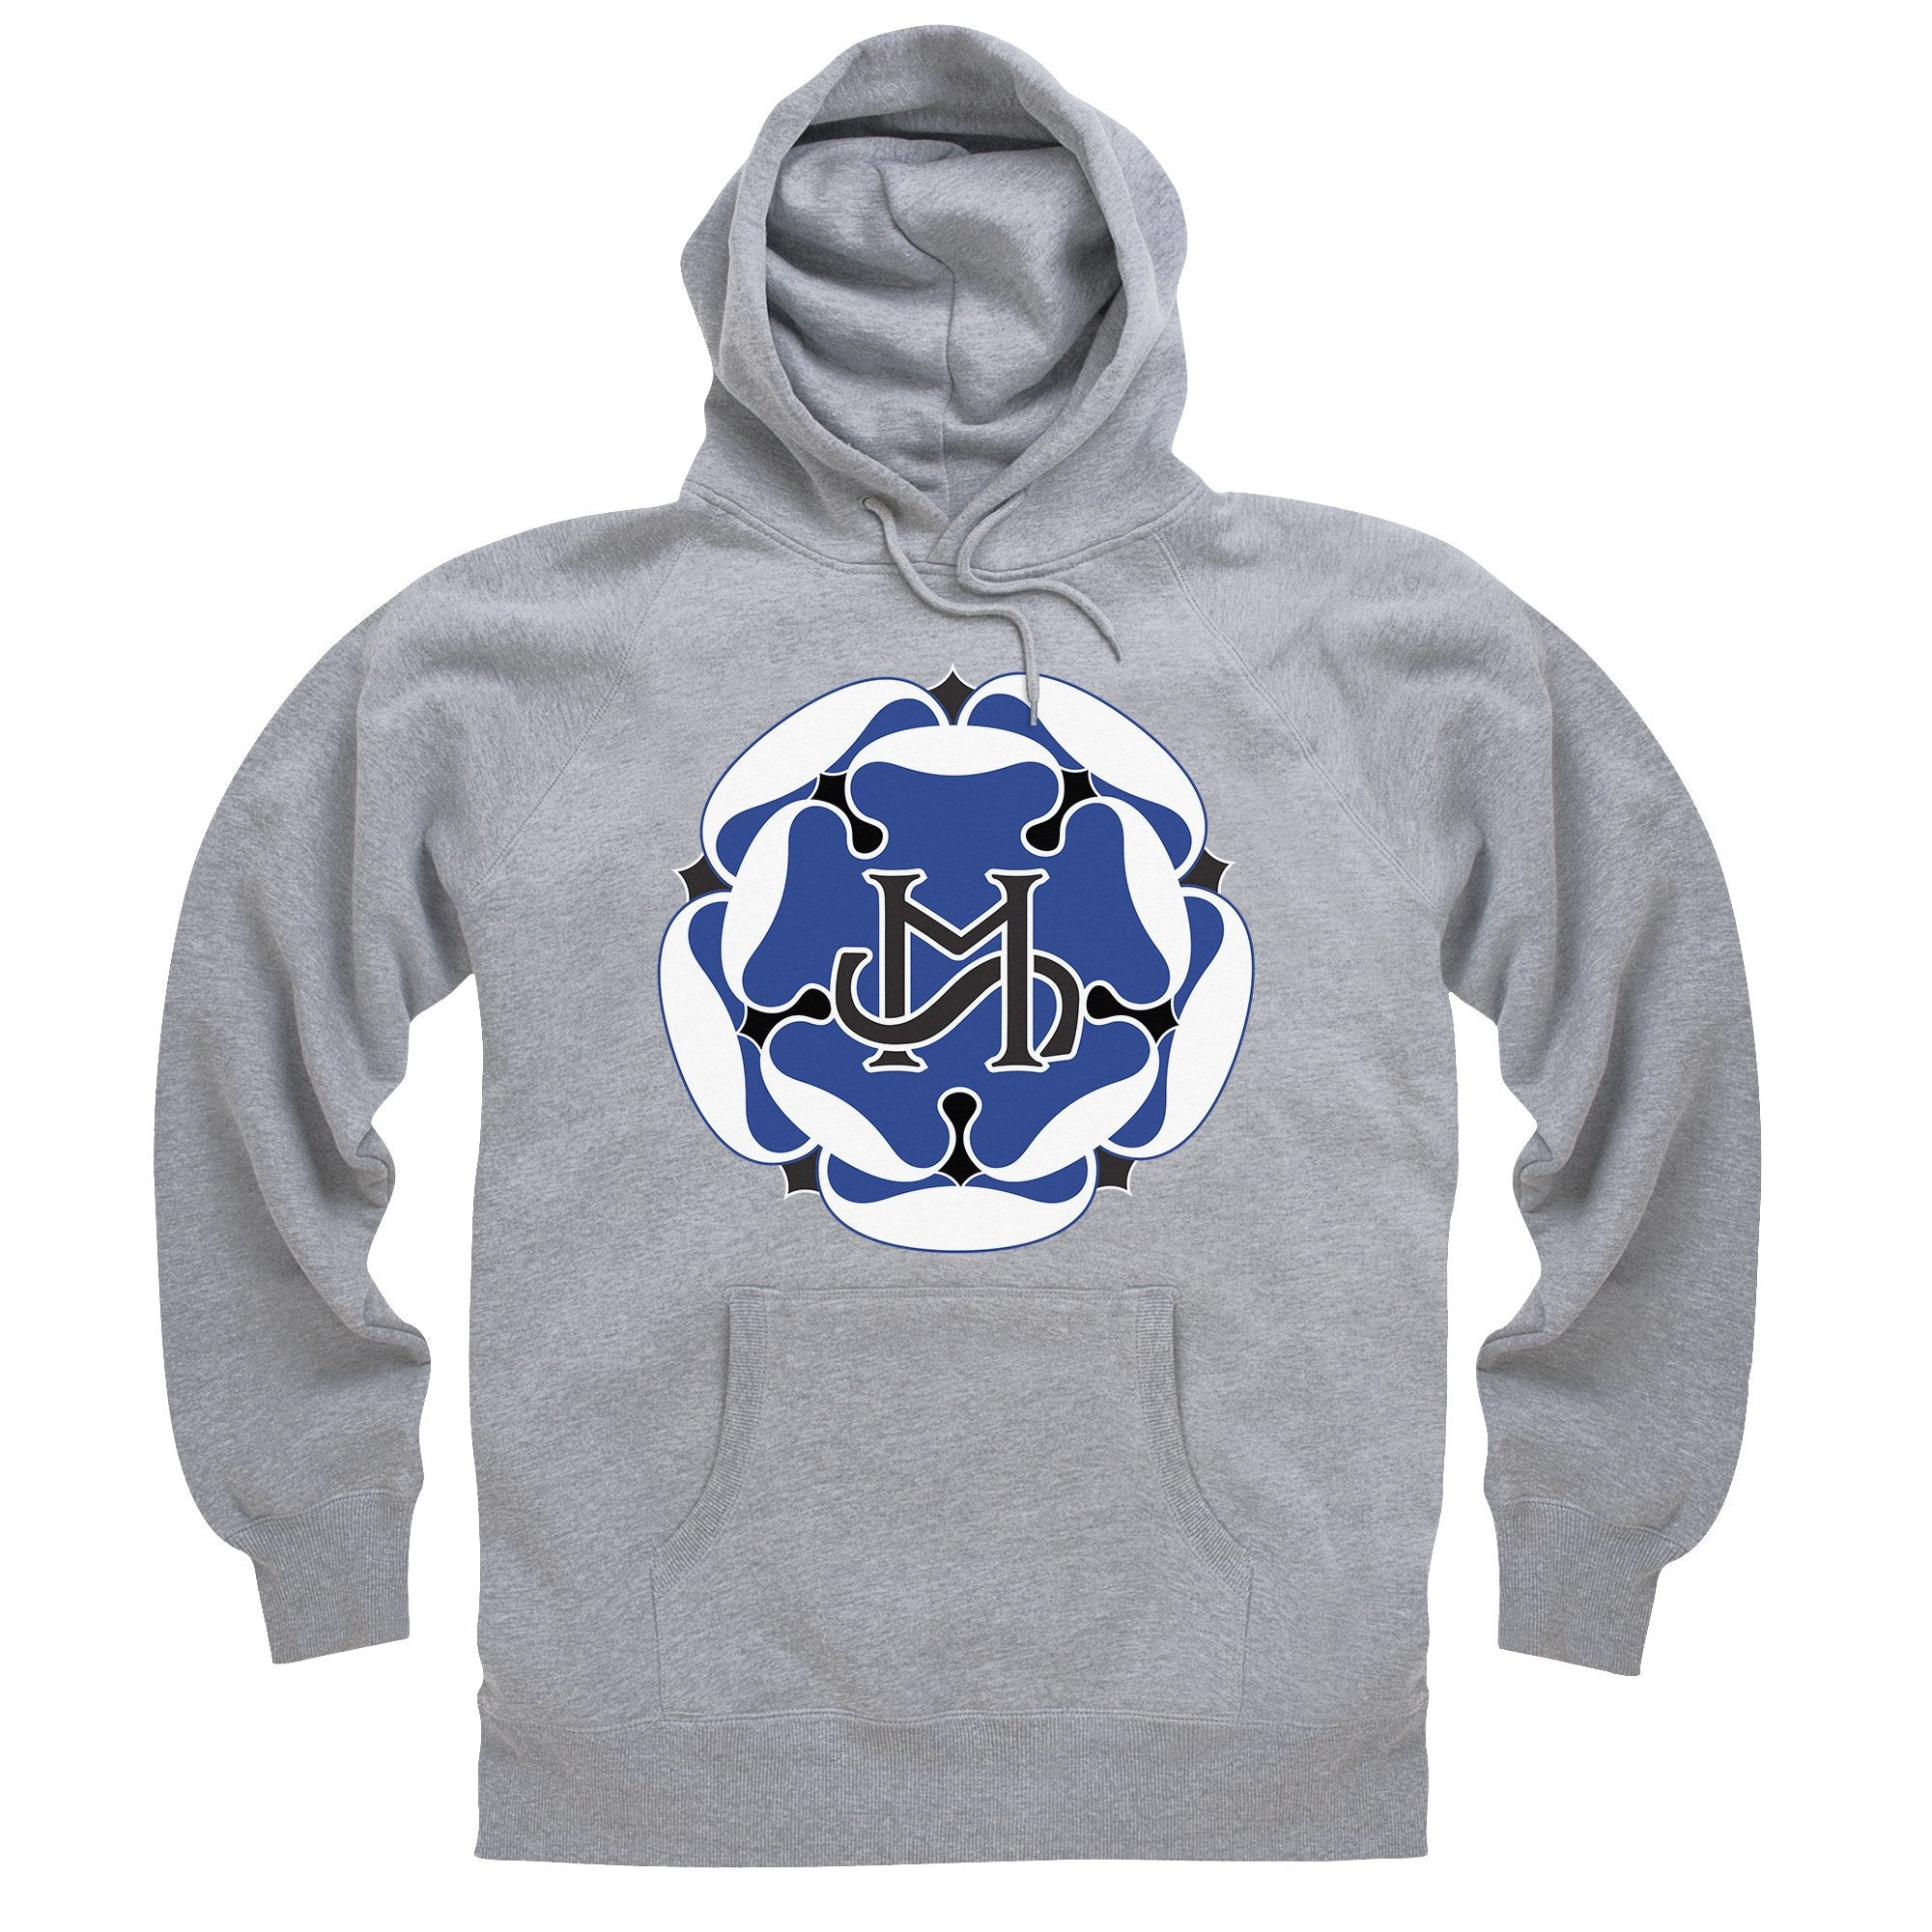 Section M hoodie